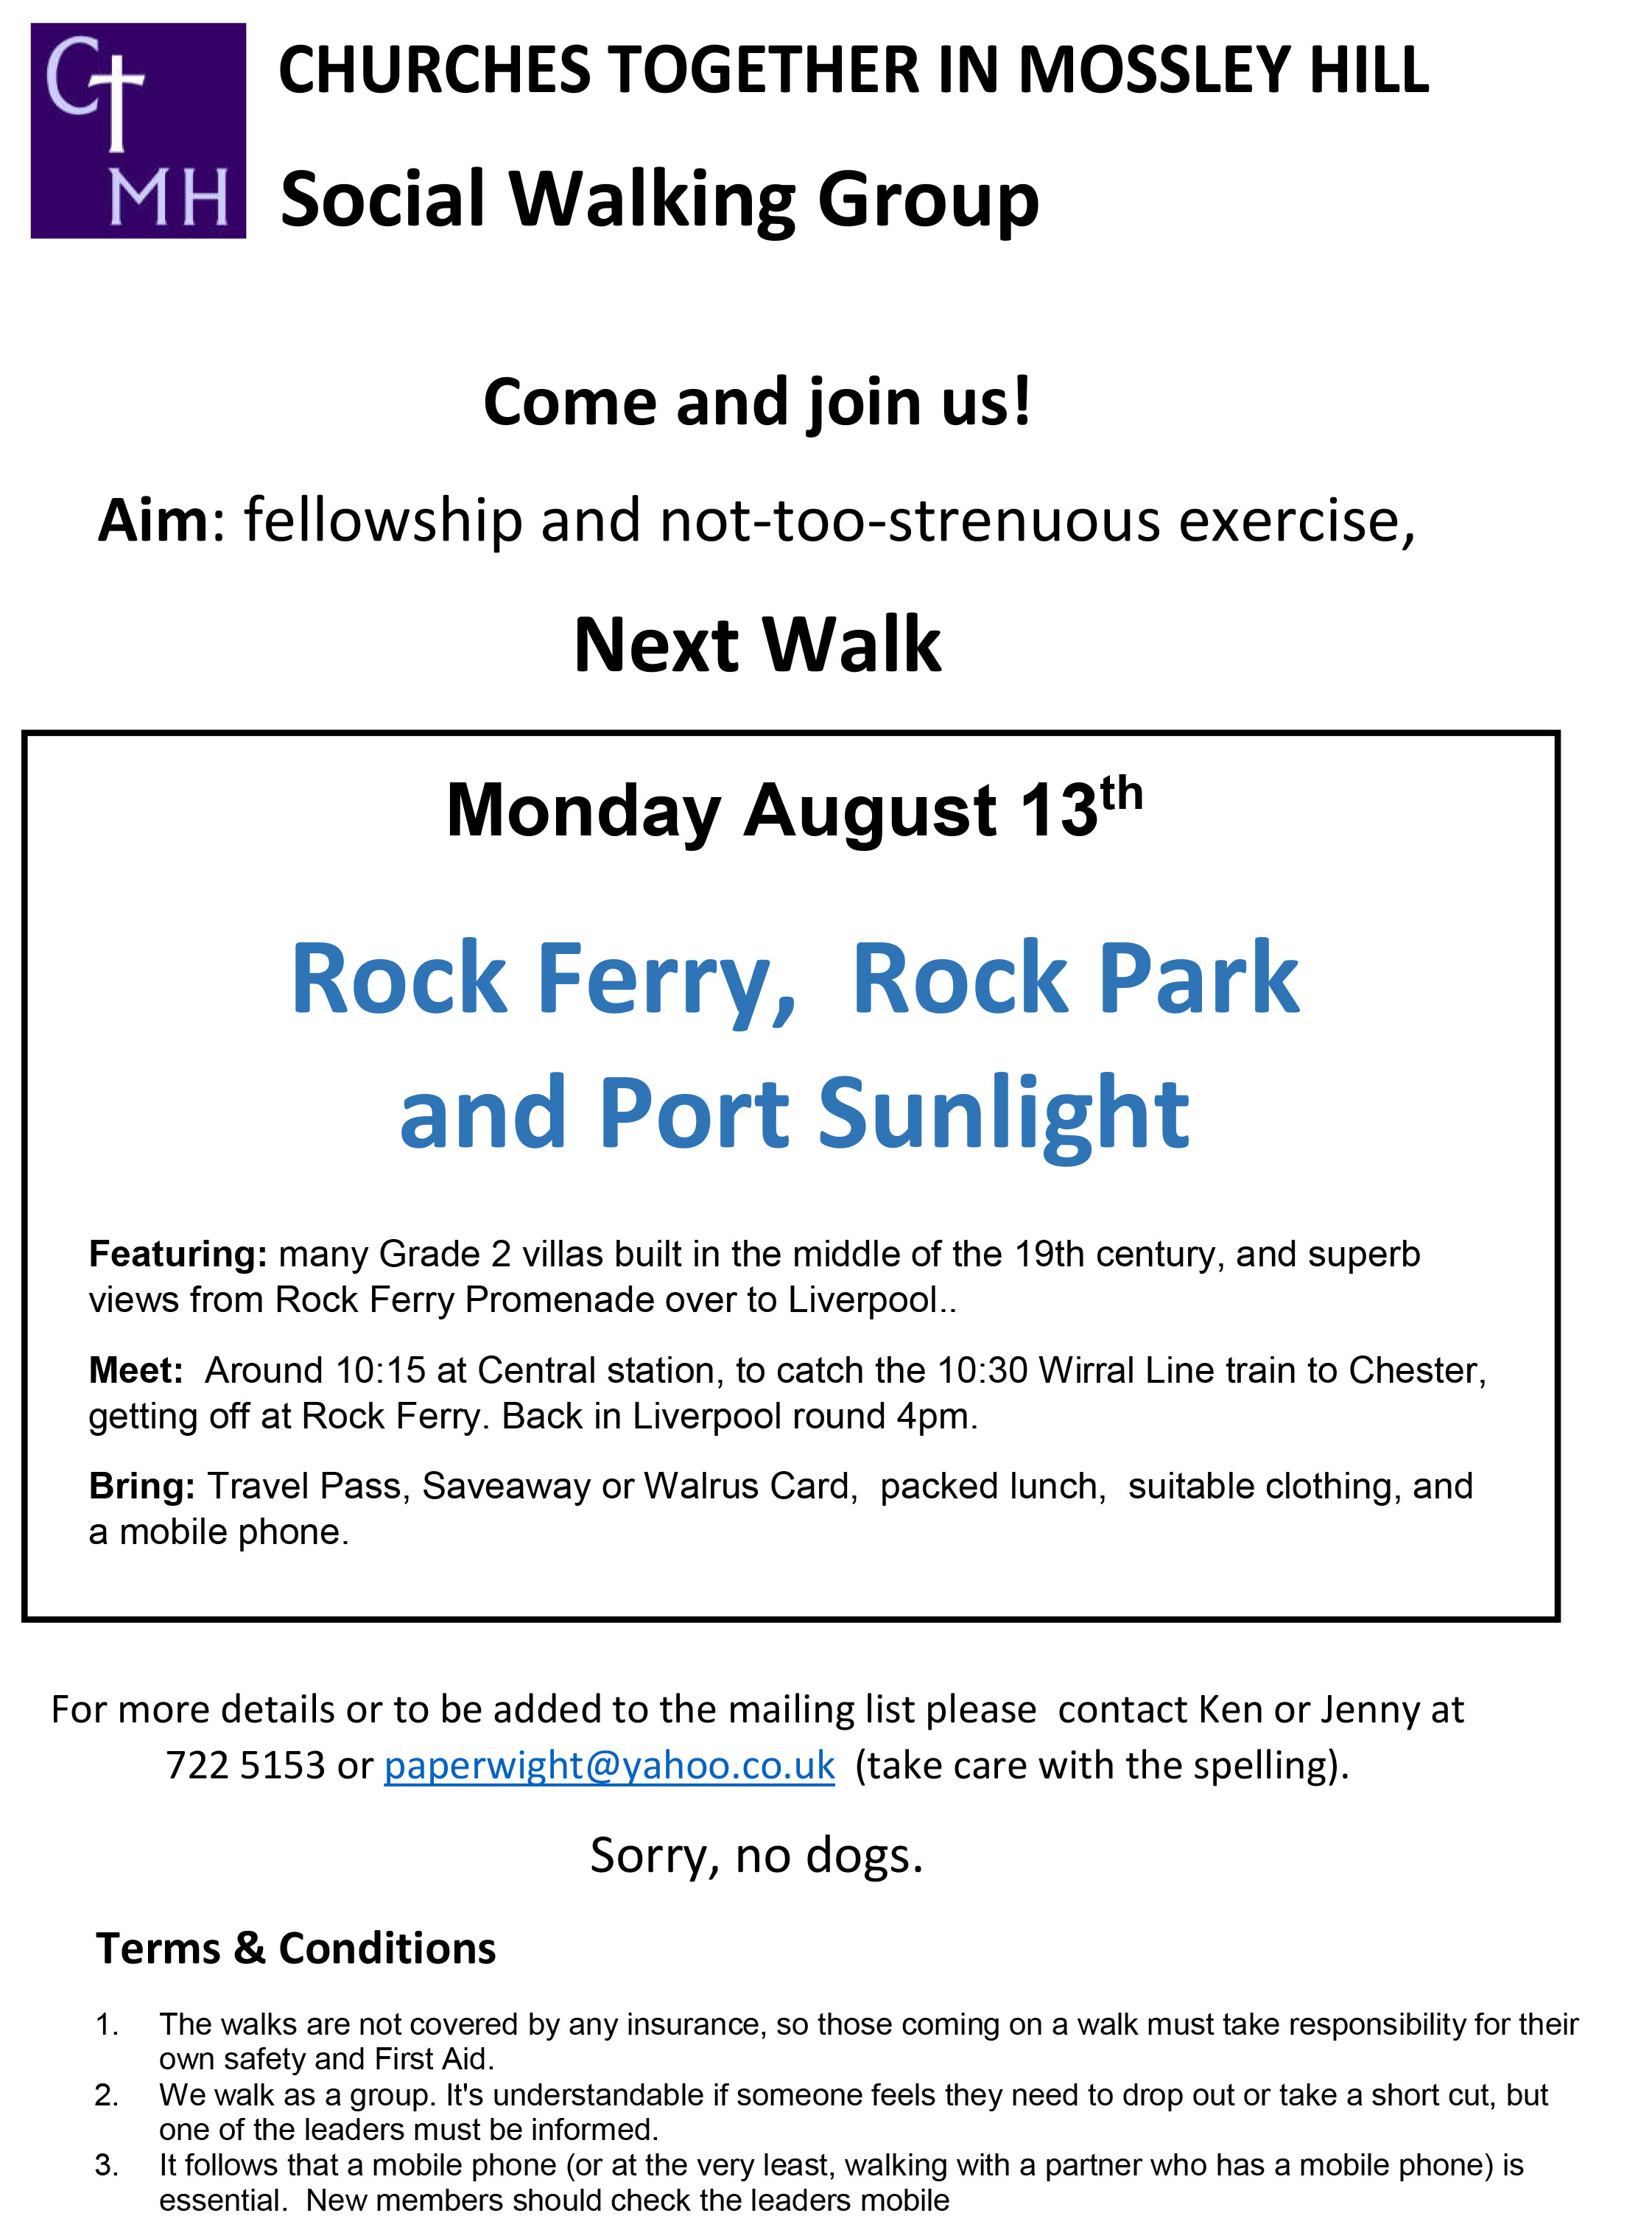 CTMH Social Walking Group August